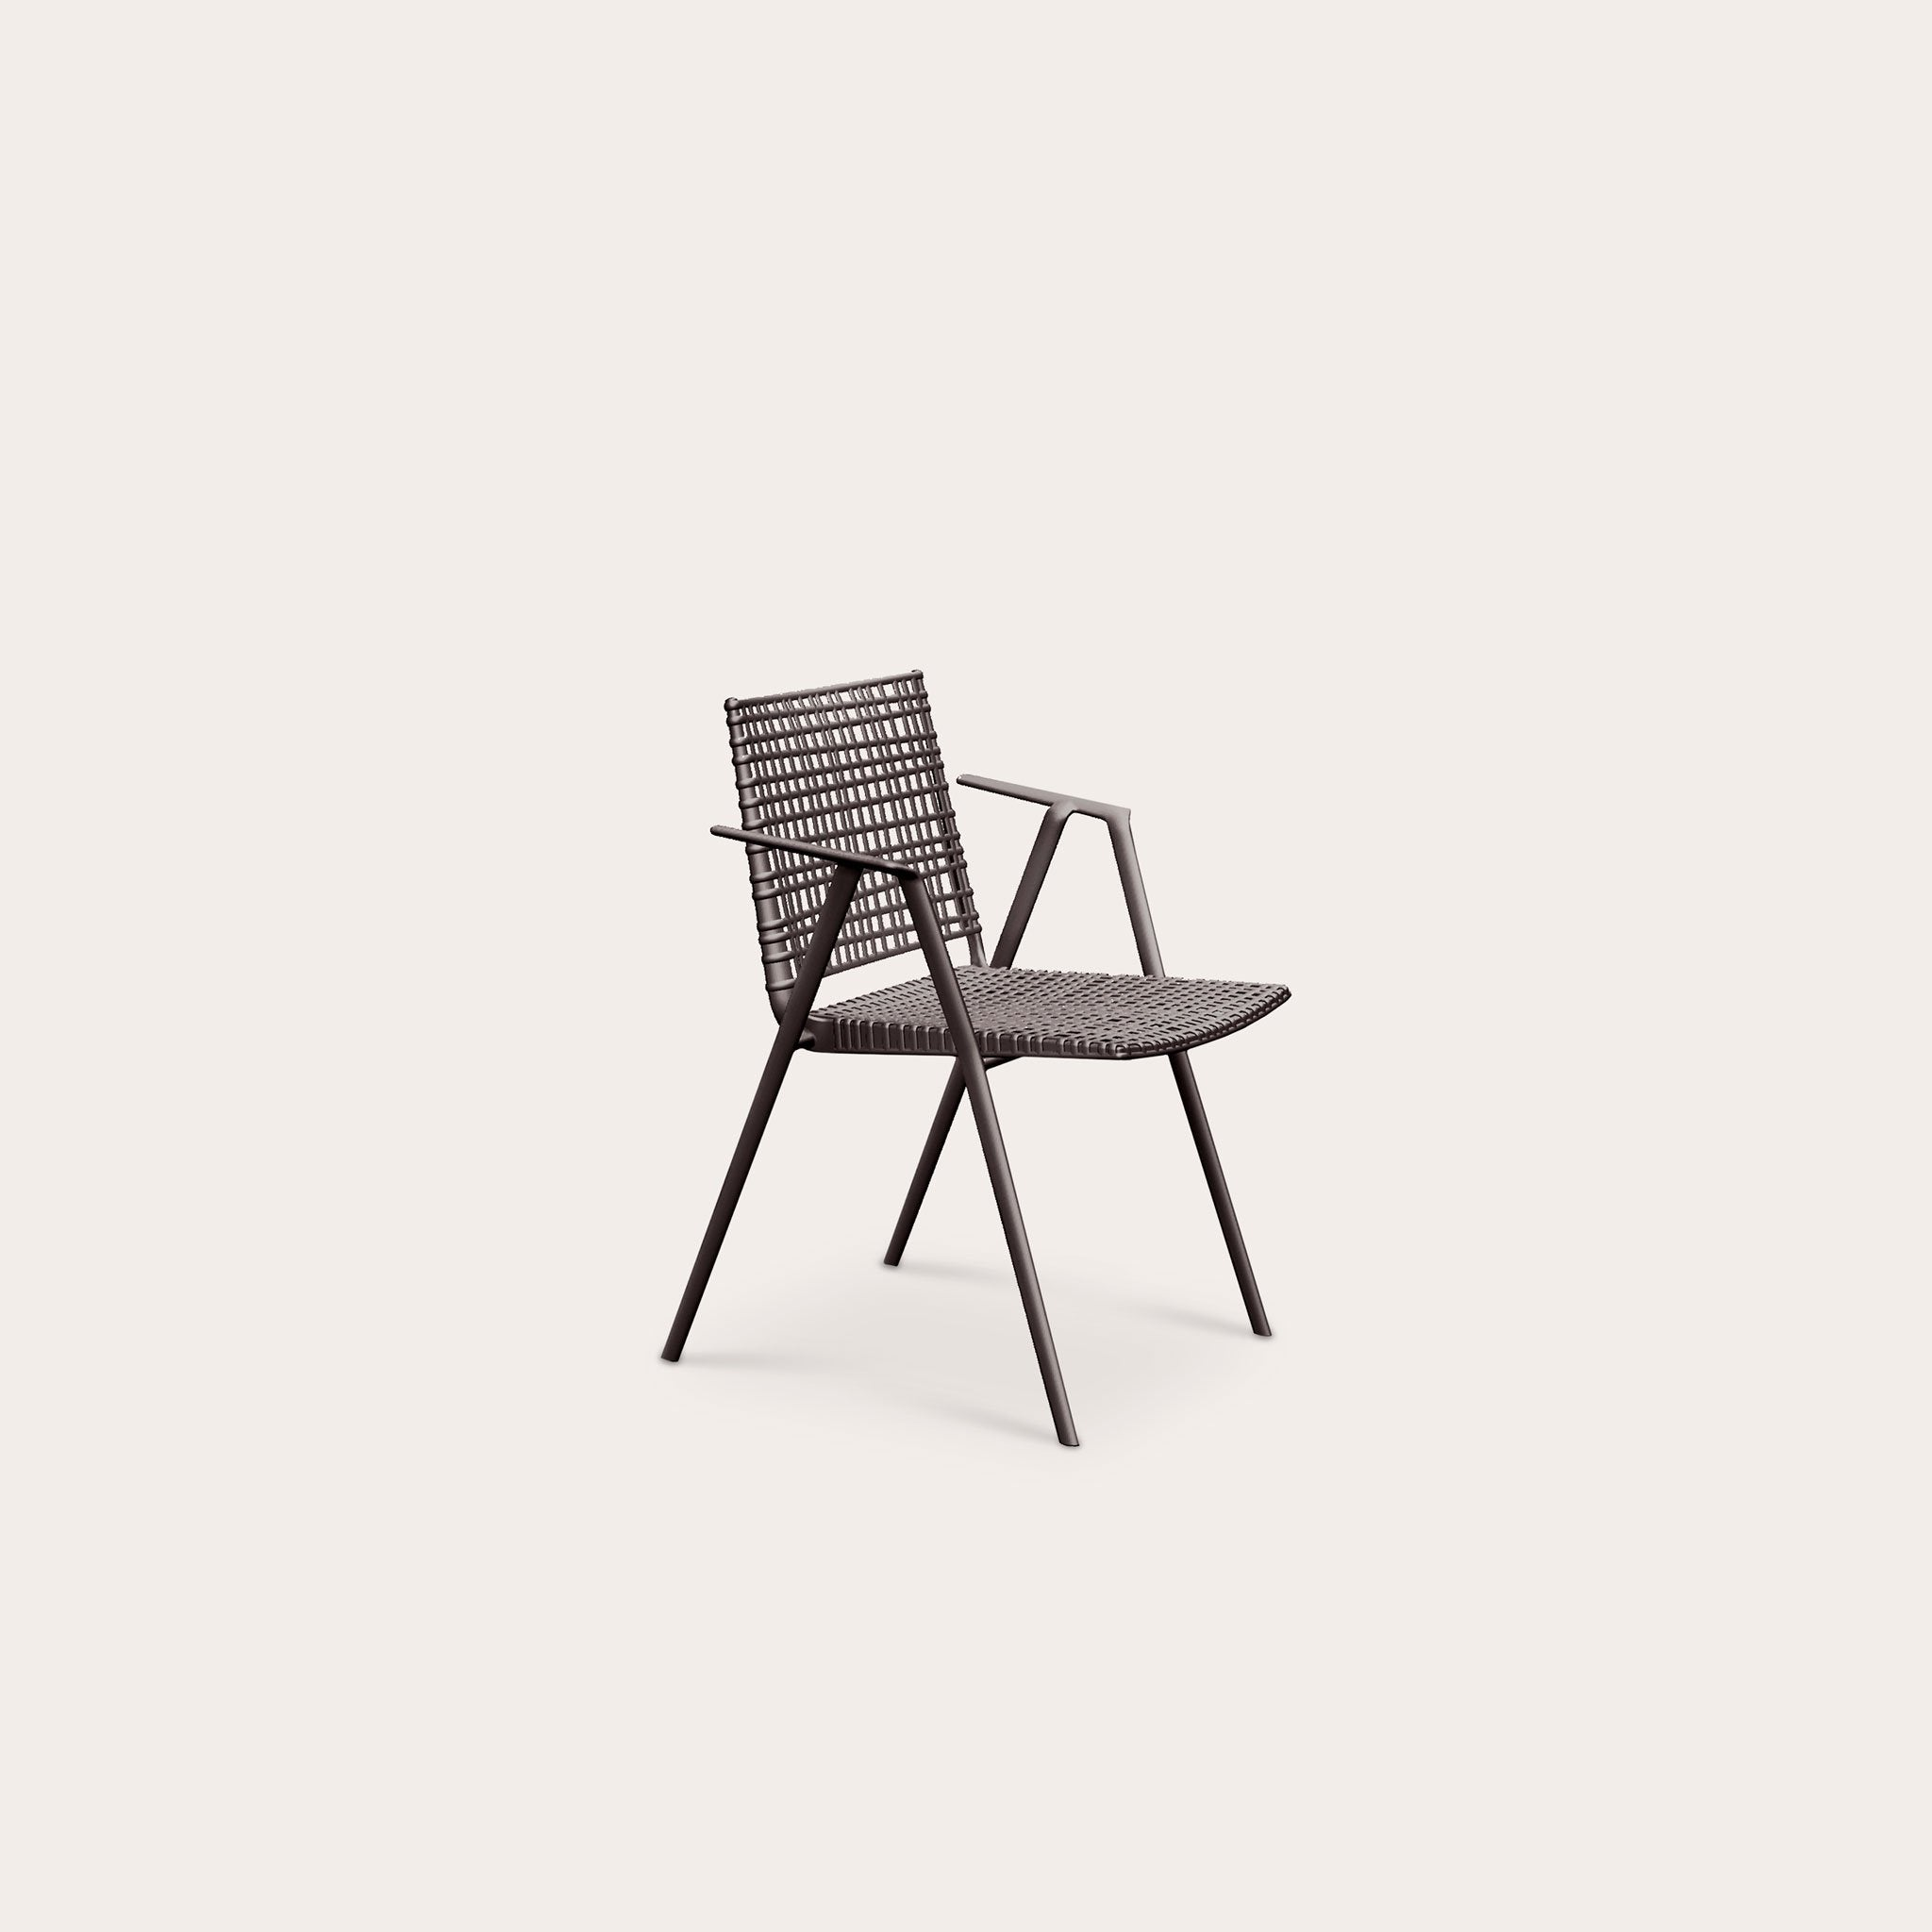 BRANCH Armchair Outdoor Altherr Lievore Molina Designer Furniture Sku: 007-200-11035